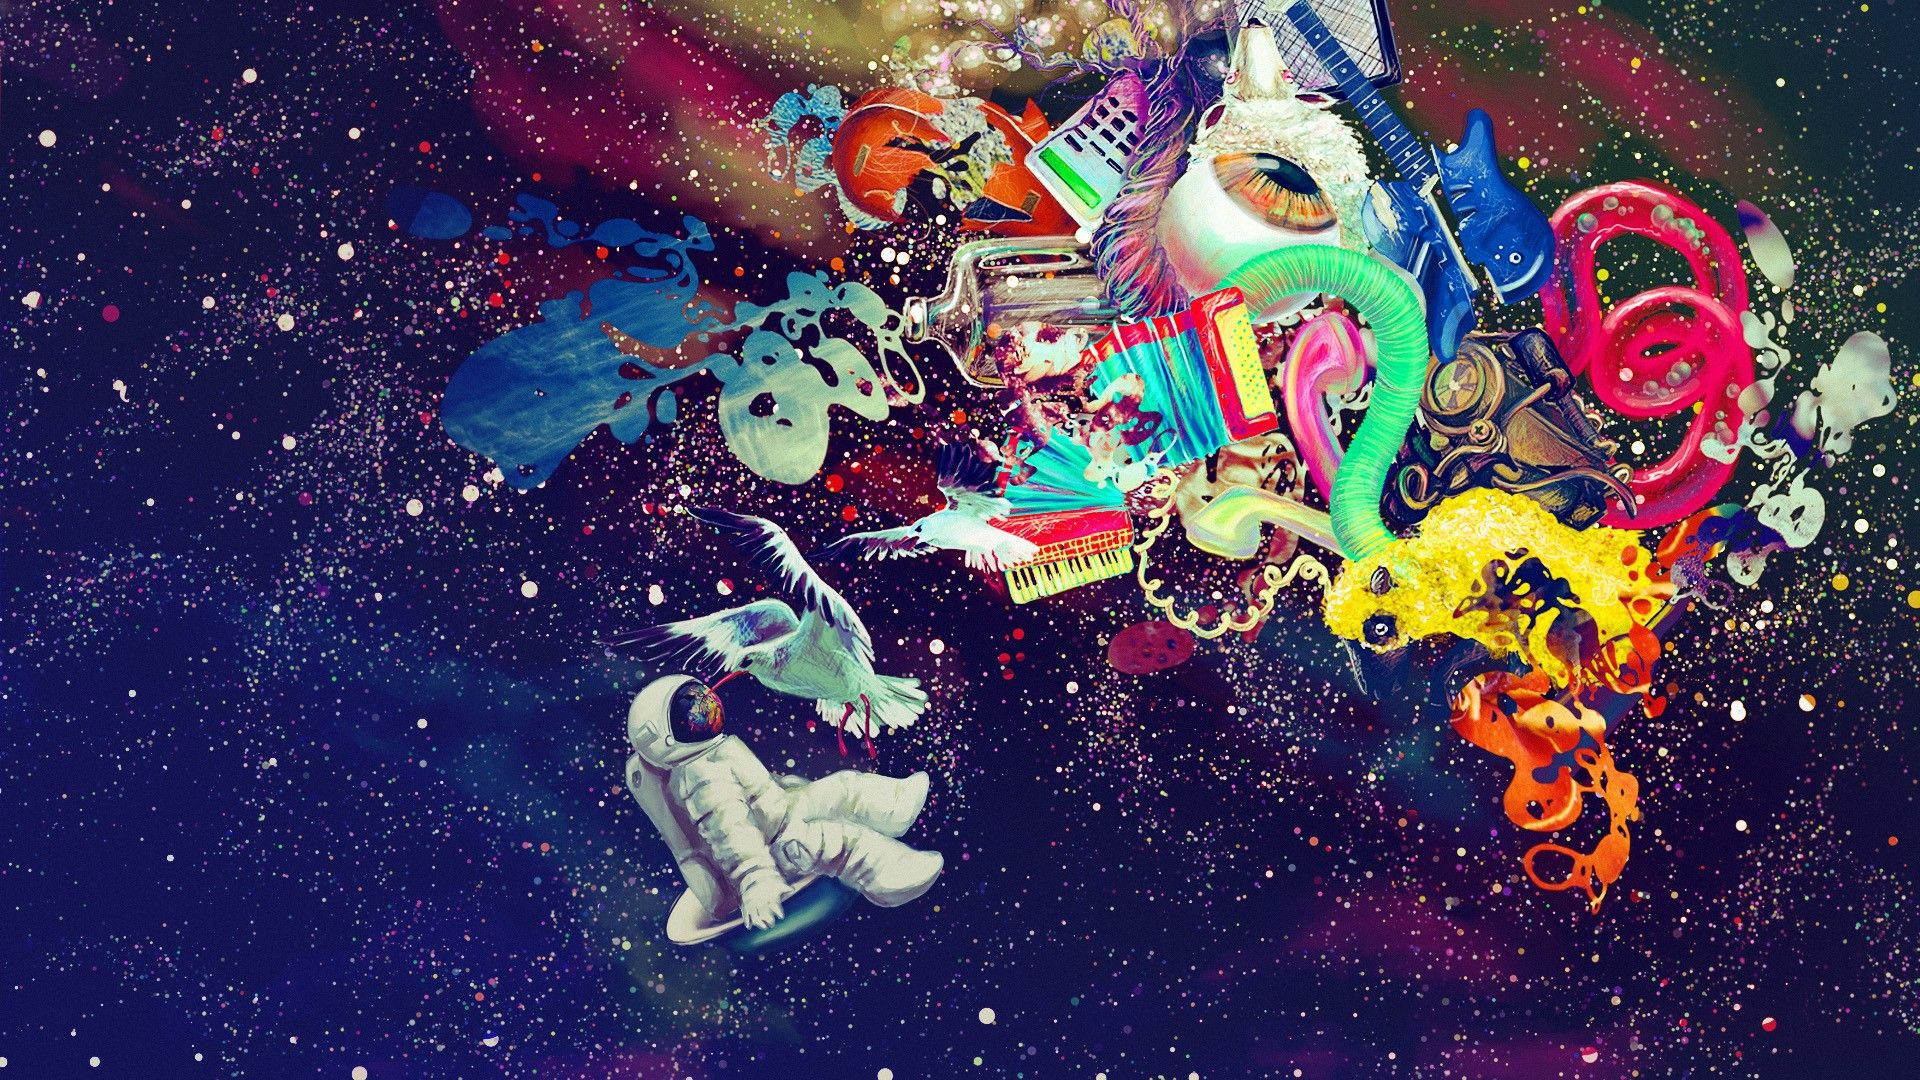 Must see Wallpaper High Resolution Trippy - ee62c5f0c478dc433d878705099e8e2a  Perfect Image Reference_512359.jpg